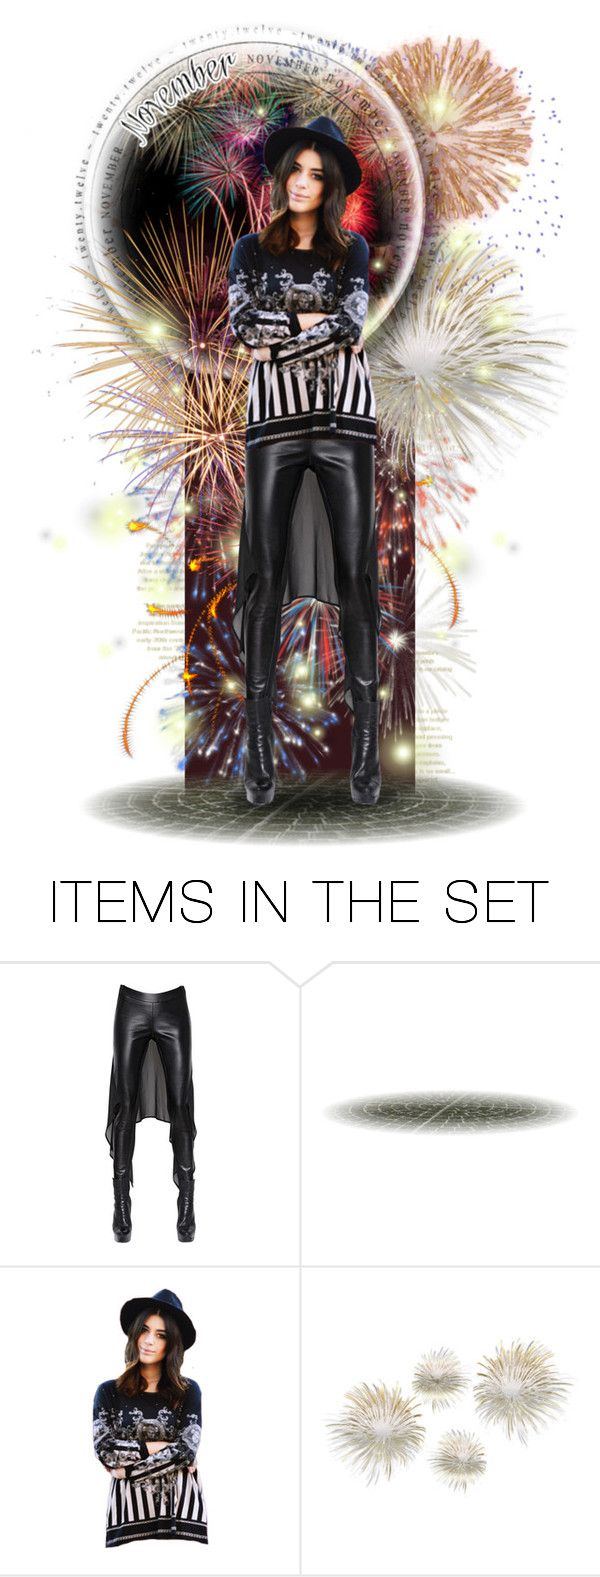 """💥Bonfire Night💥 - Contest!"" by asia-12 ❤ liked on Polyvore featuring art"